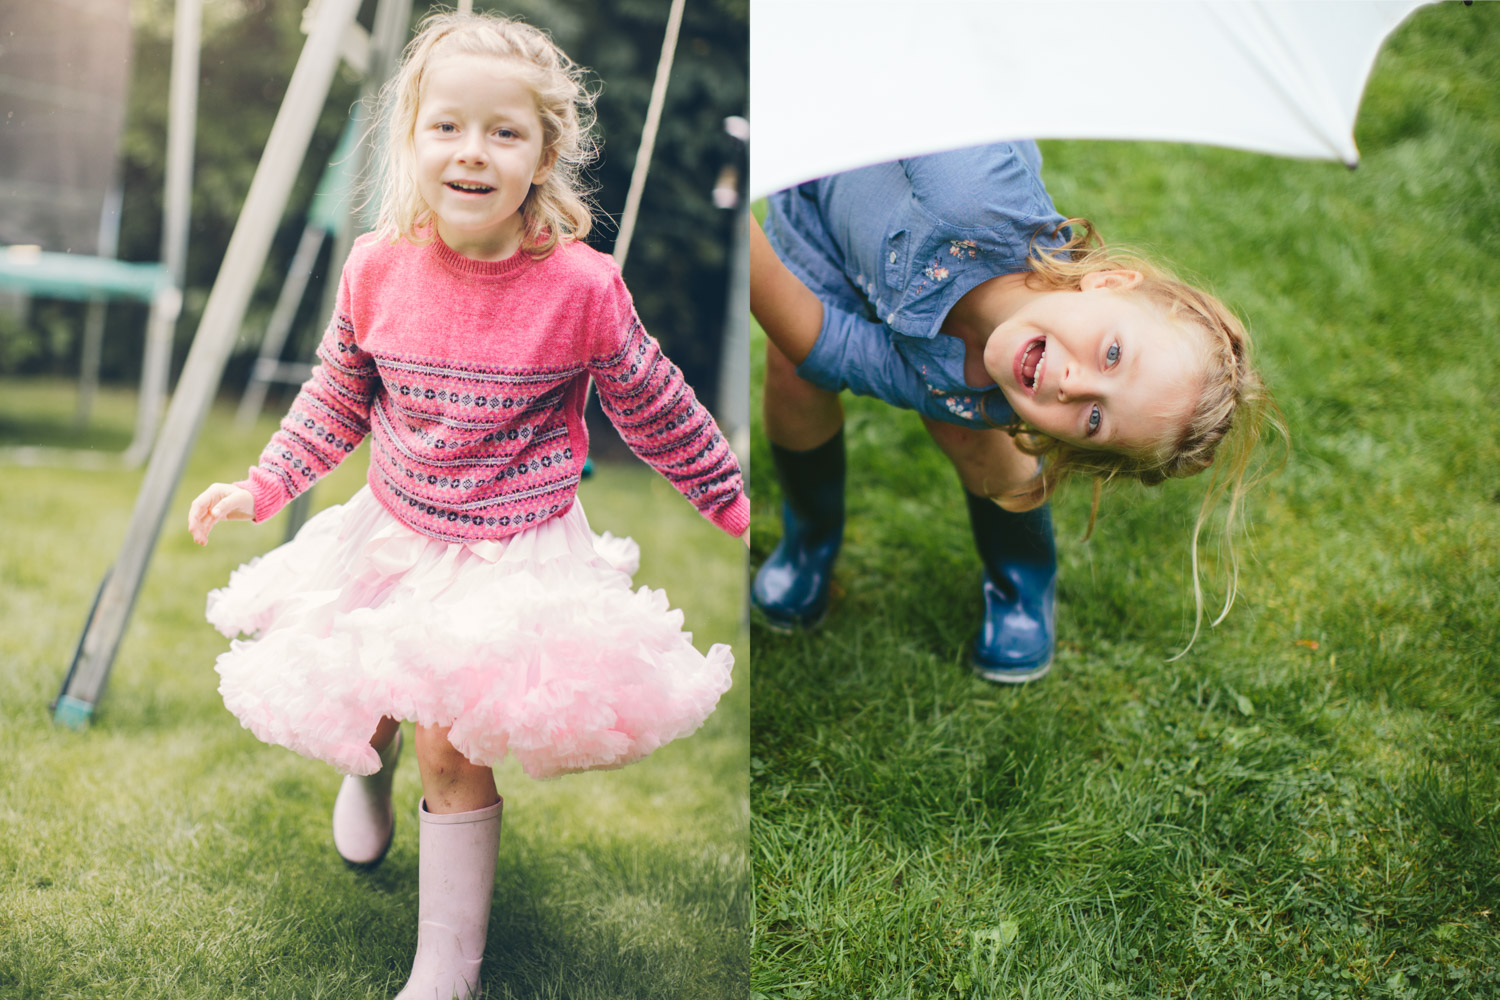 44_katierollings_KidsFashion_photographer_london.jpg